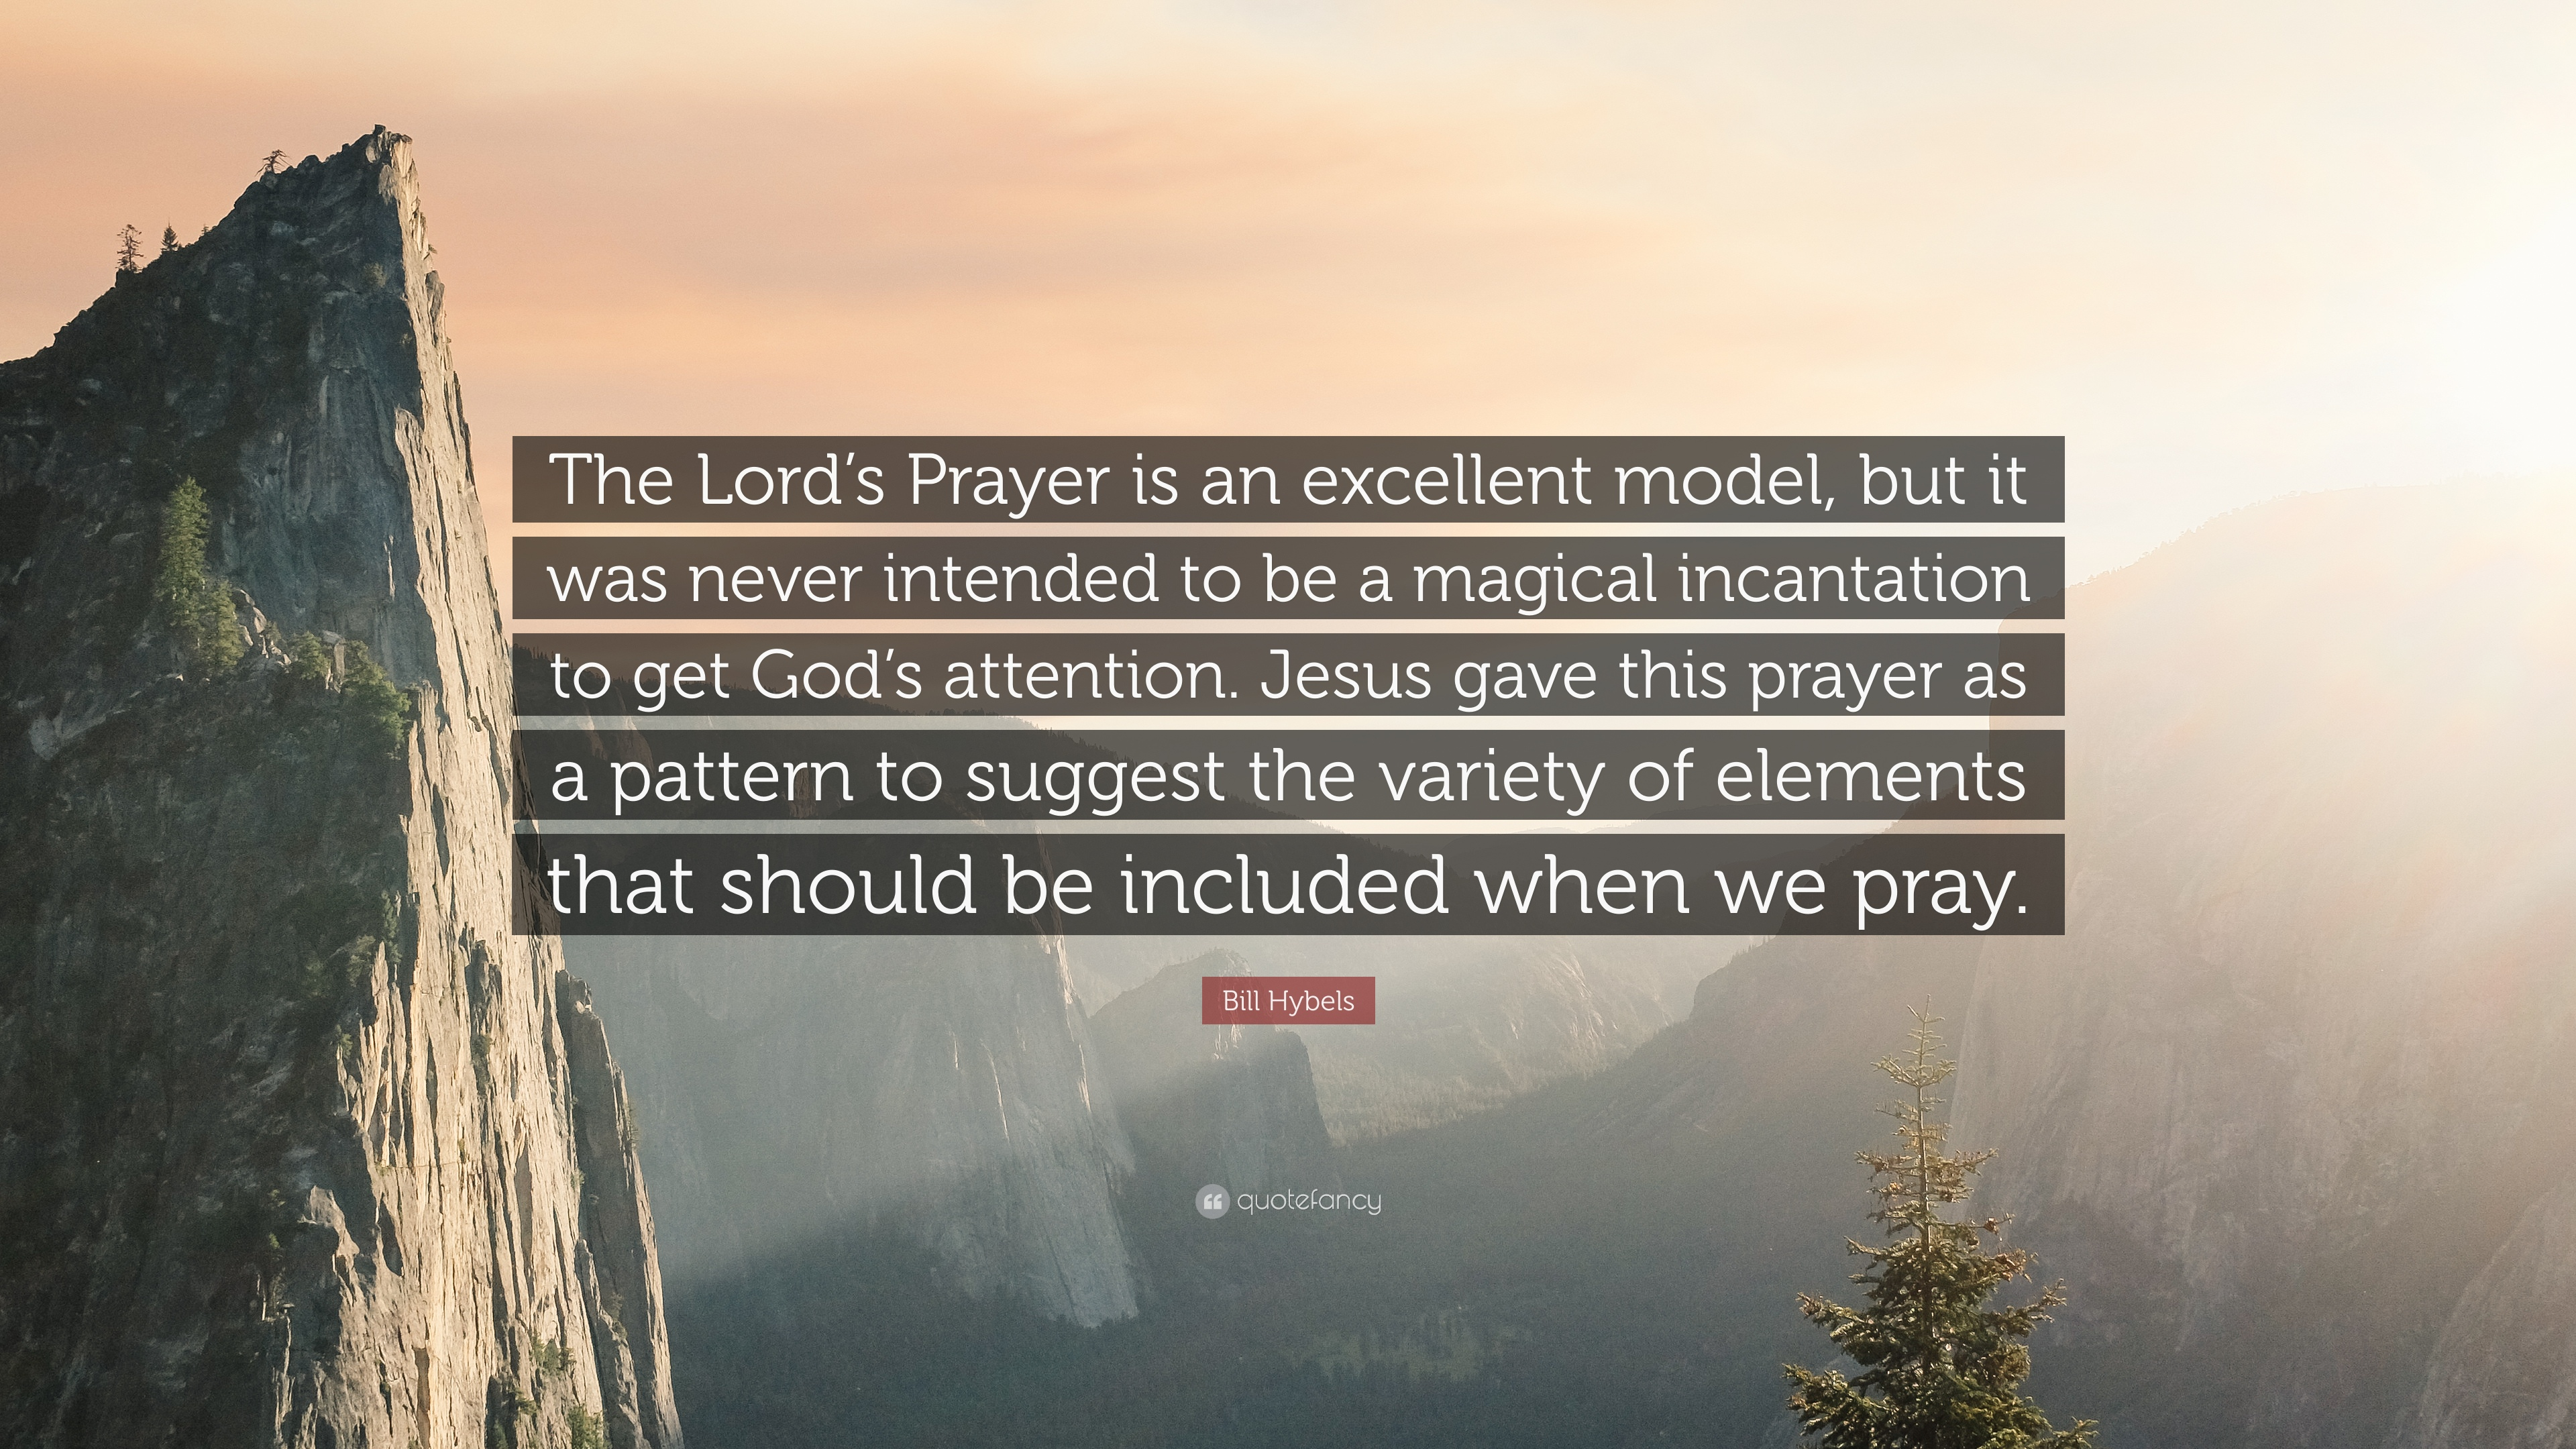 Bill Hybels Quote The Lord S Prayer Is An Excellent Model But It Was Never Intended To Be A Magical Incantation To Get God S Attention J 7 Wallpapers Quotefancy